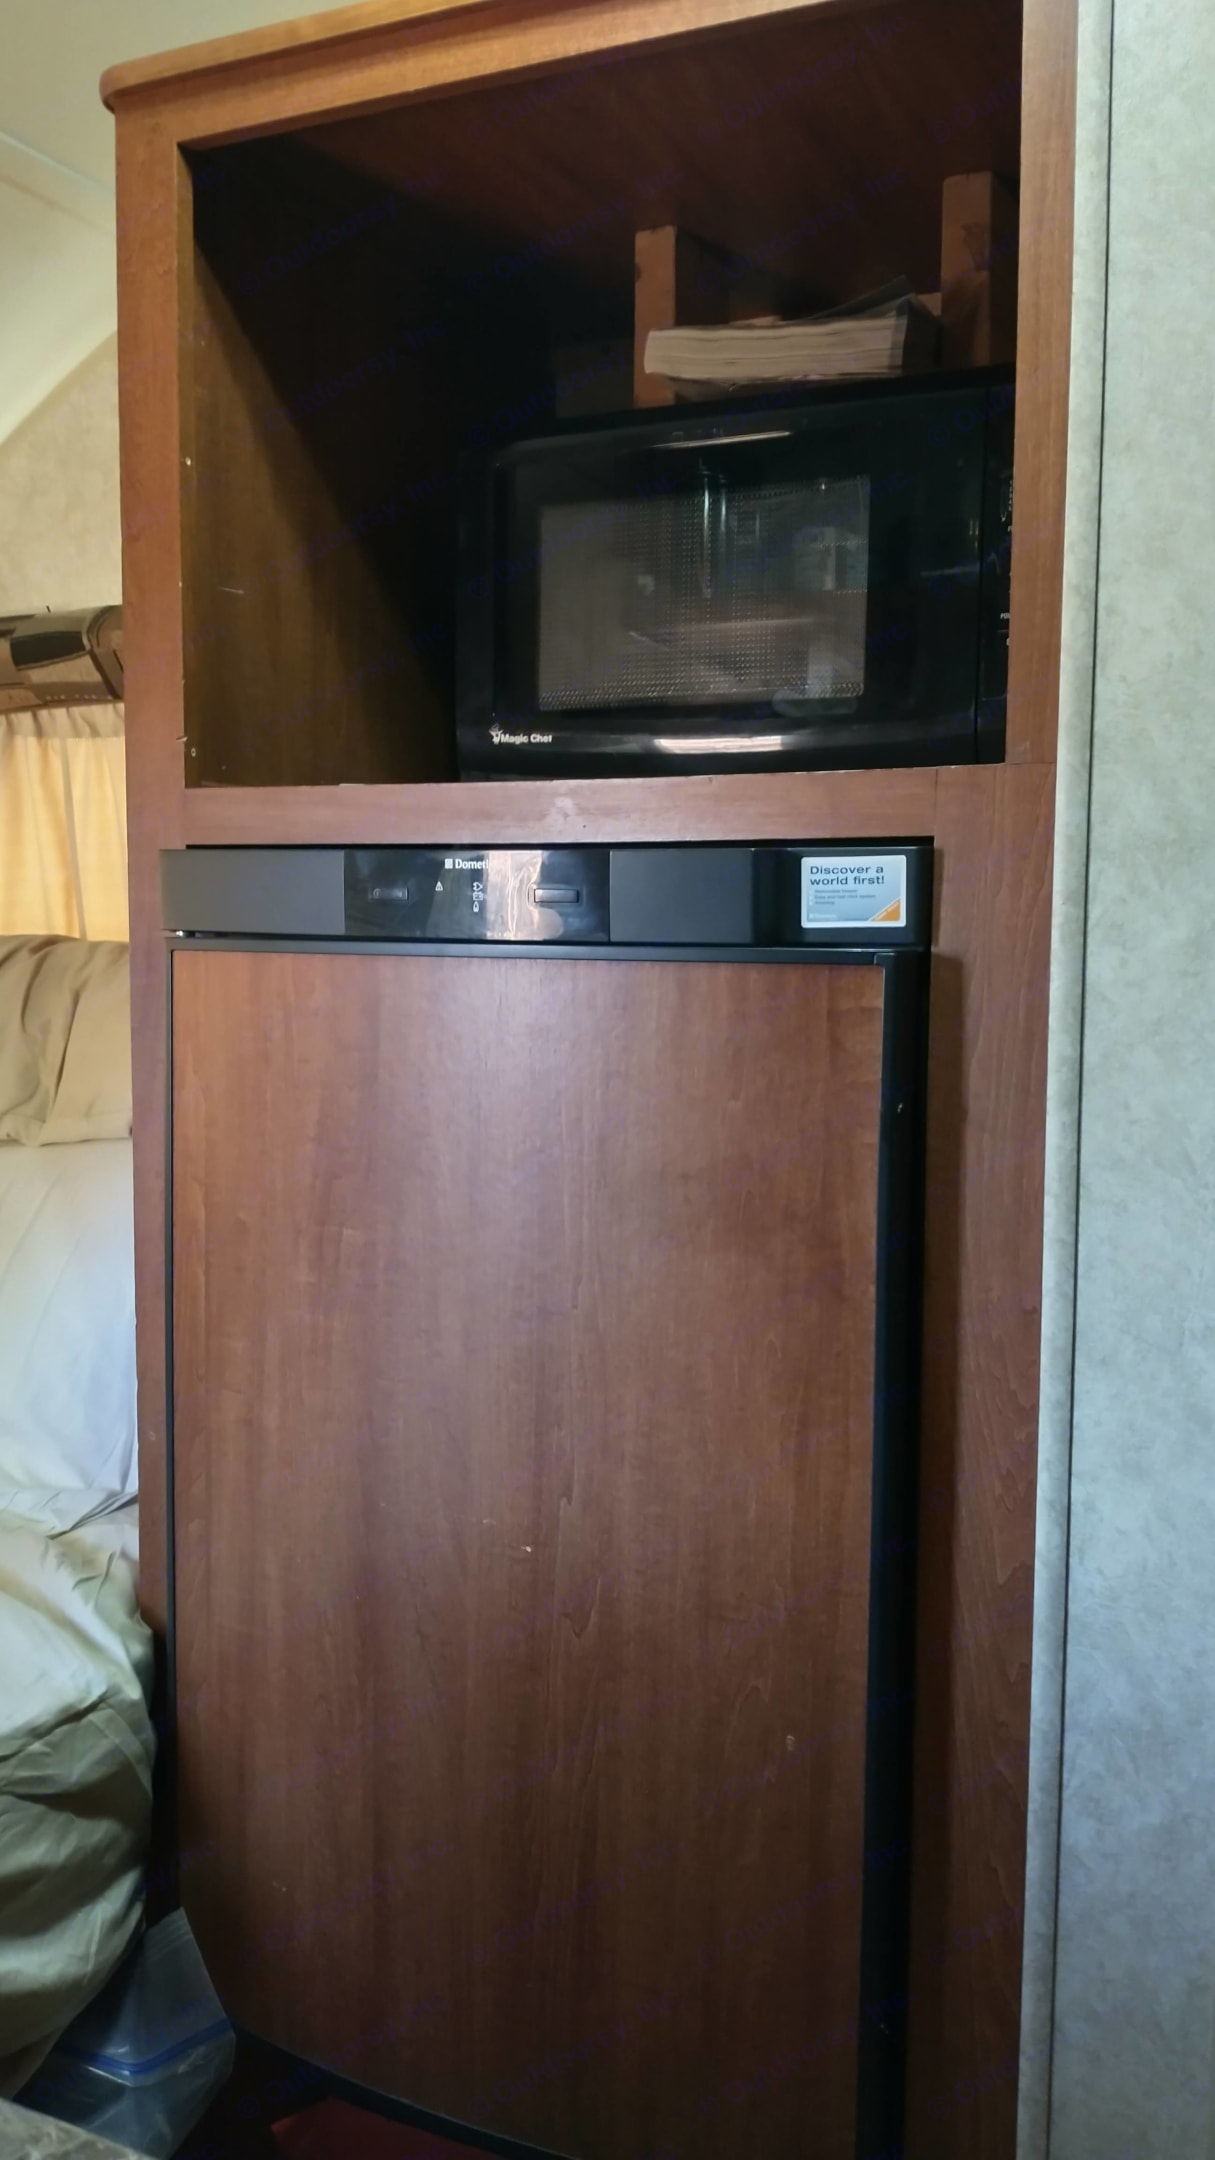 Refrigerator and Microwave for storing and preparing food. Forest River R-Pod 2011